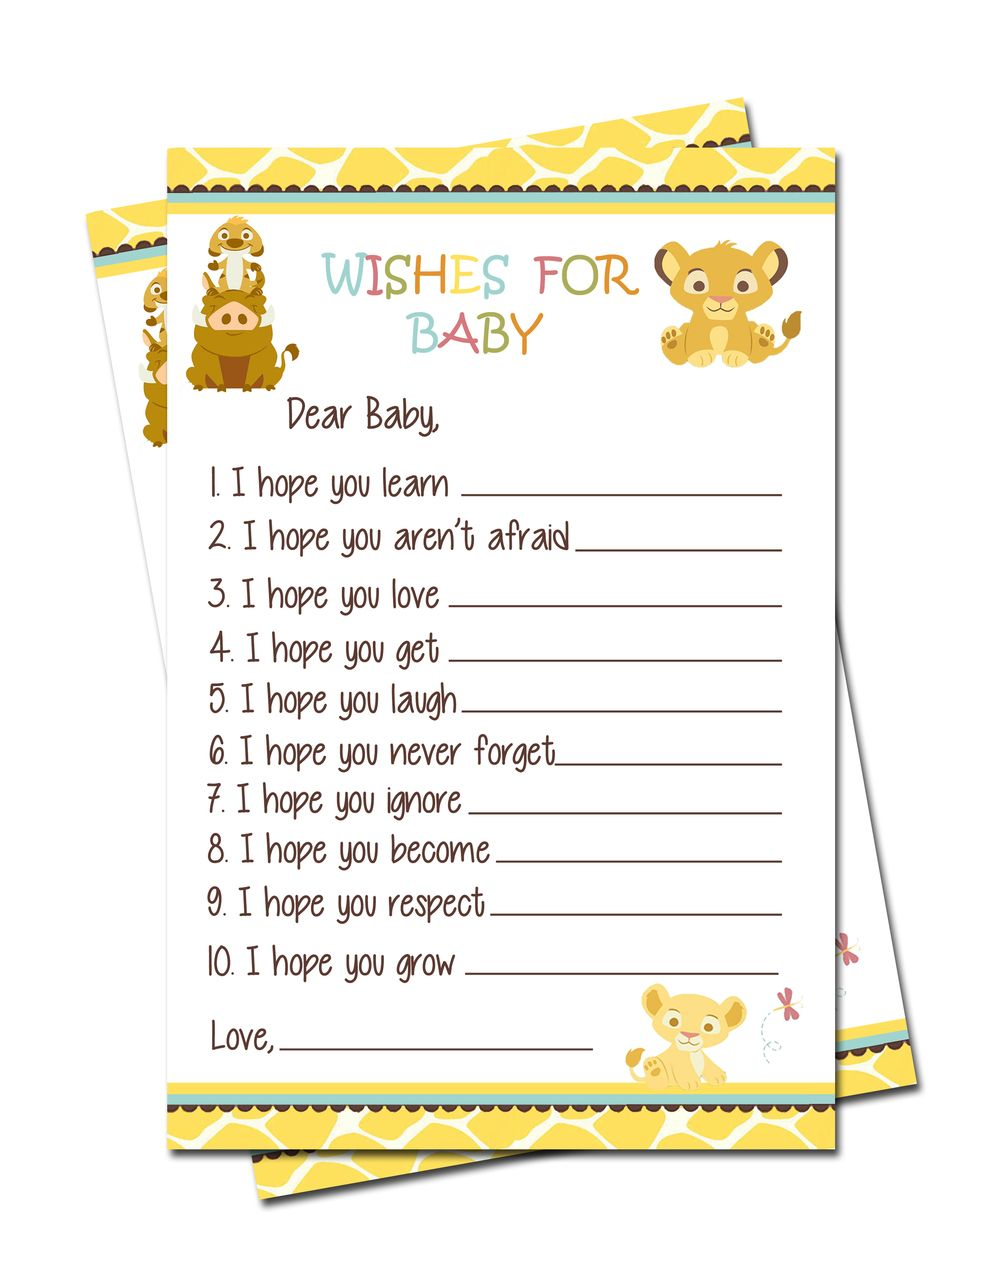 Supreme Baby Games Partyexpressinvitations Simba Lion King Baby Shower Wishes Simba Lion King Baby Shower Wishes Baby Games Lion King Baby Baby Shower Wishes Christian Baby Shower Wishes Template